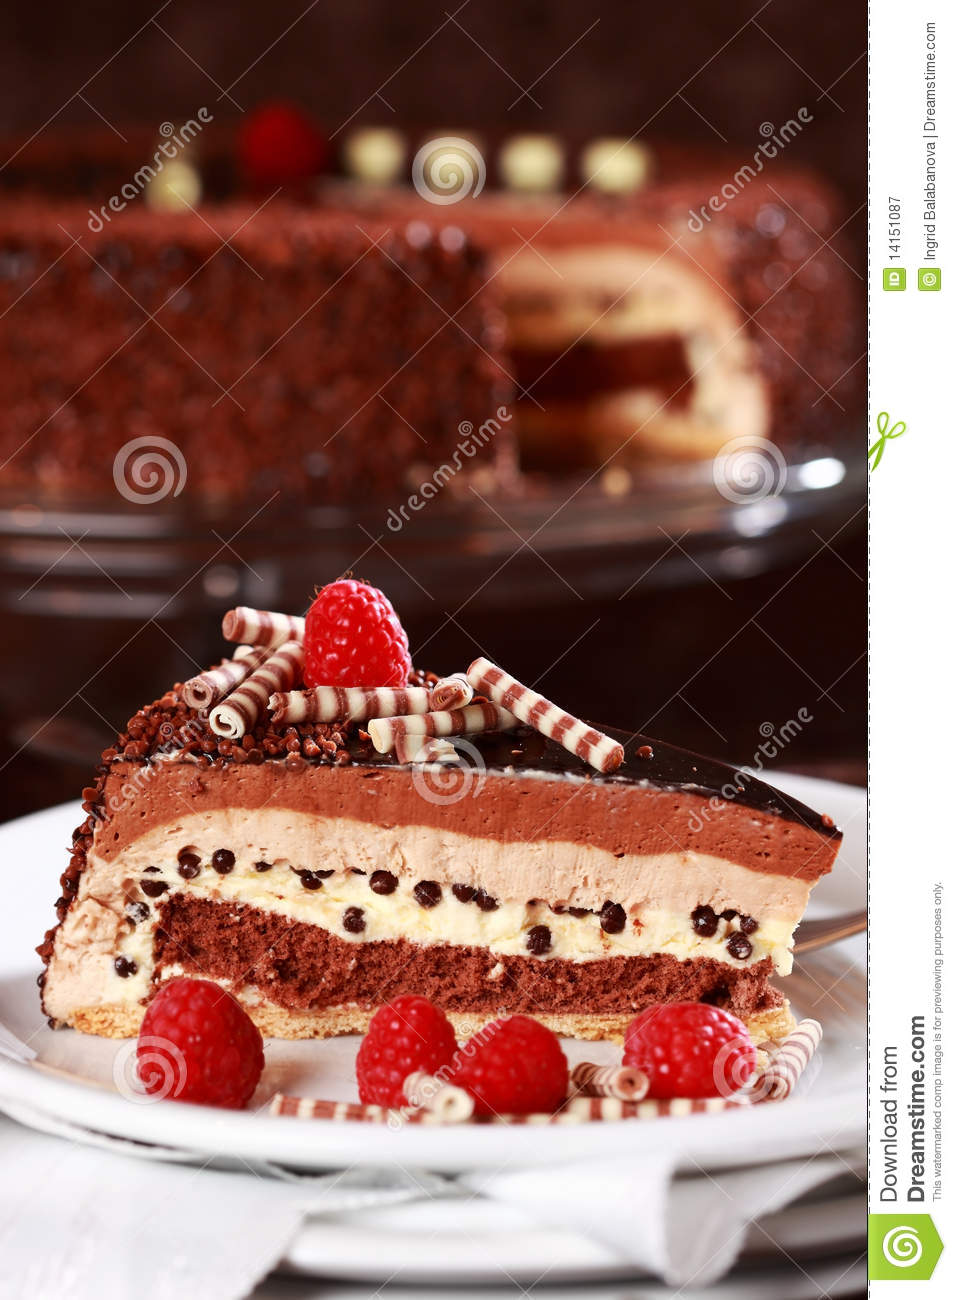 Delicious Chocolate Cake Stock Image Image Of Dessert